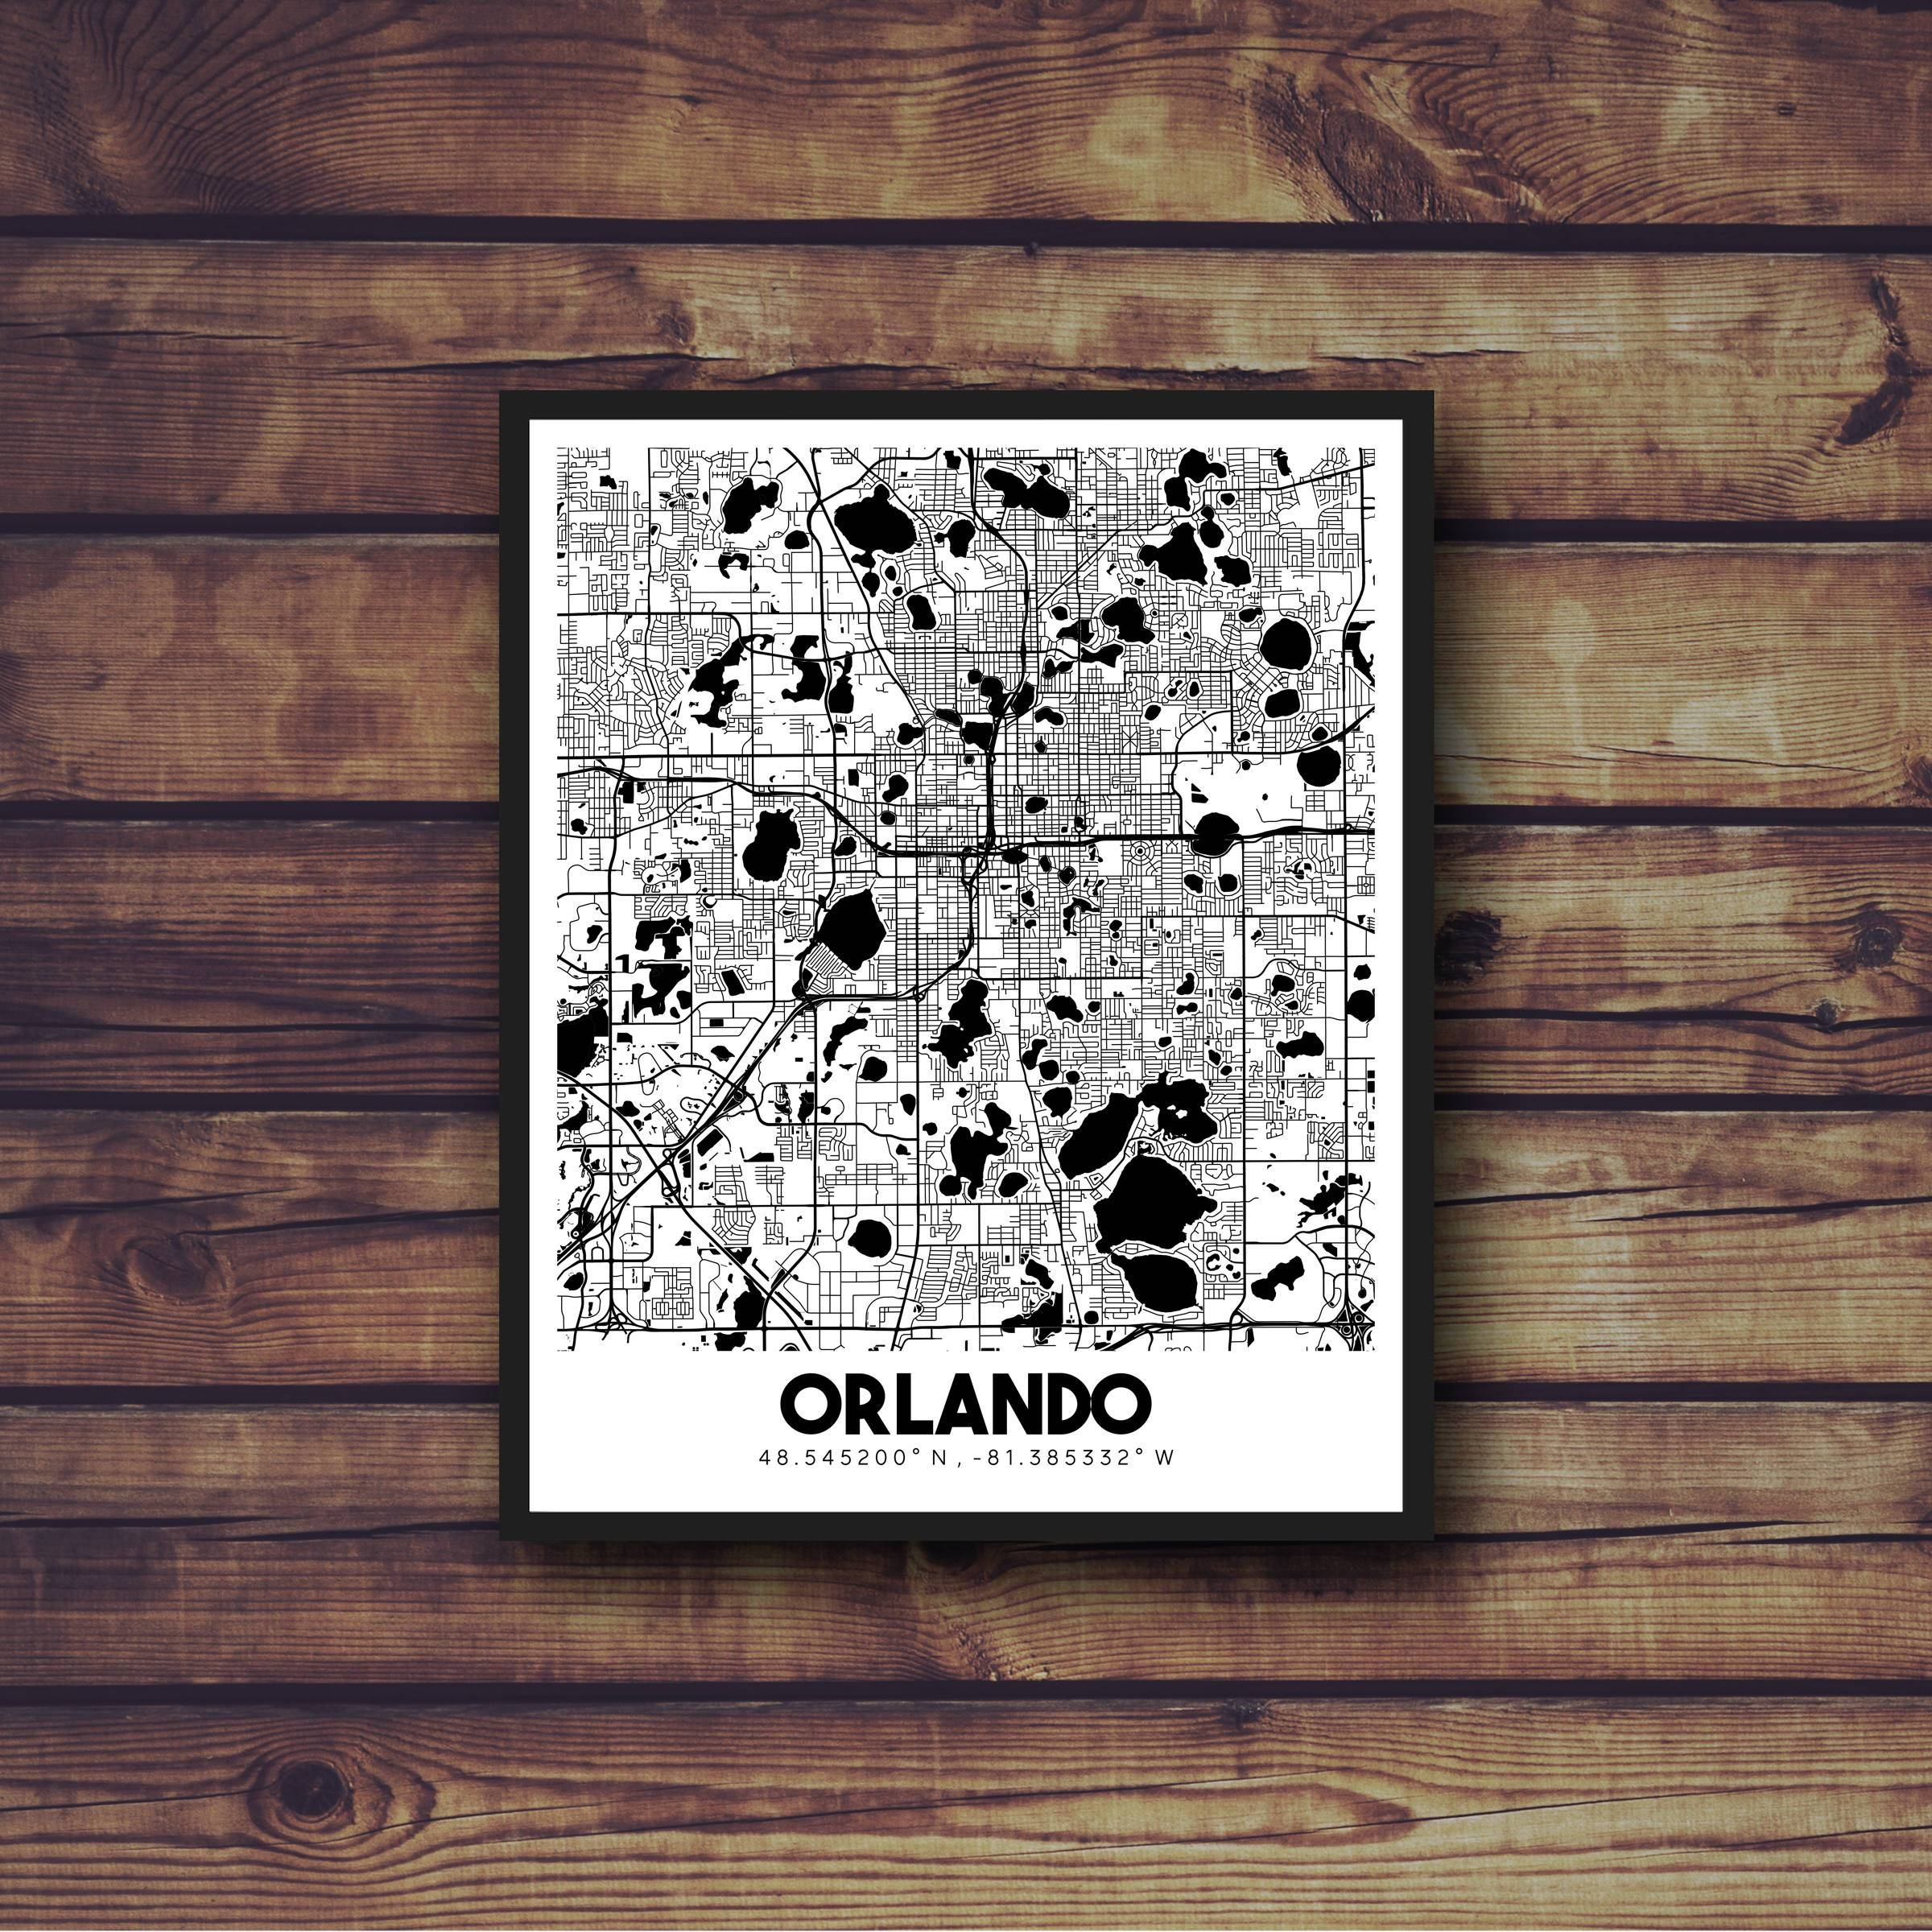 Orlando Florida Downtown Street Map Orlando Florida City Map Within Most Up To Date Florida Map Wall Art (Gallery 12 of 20)